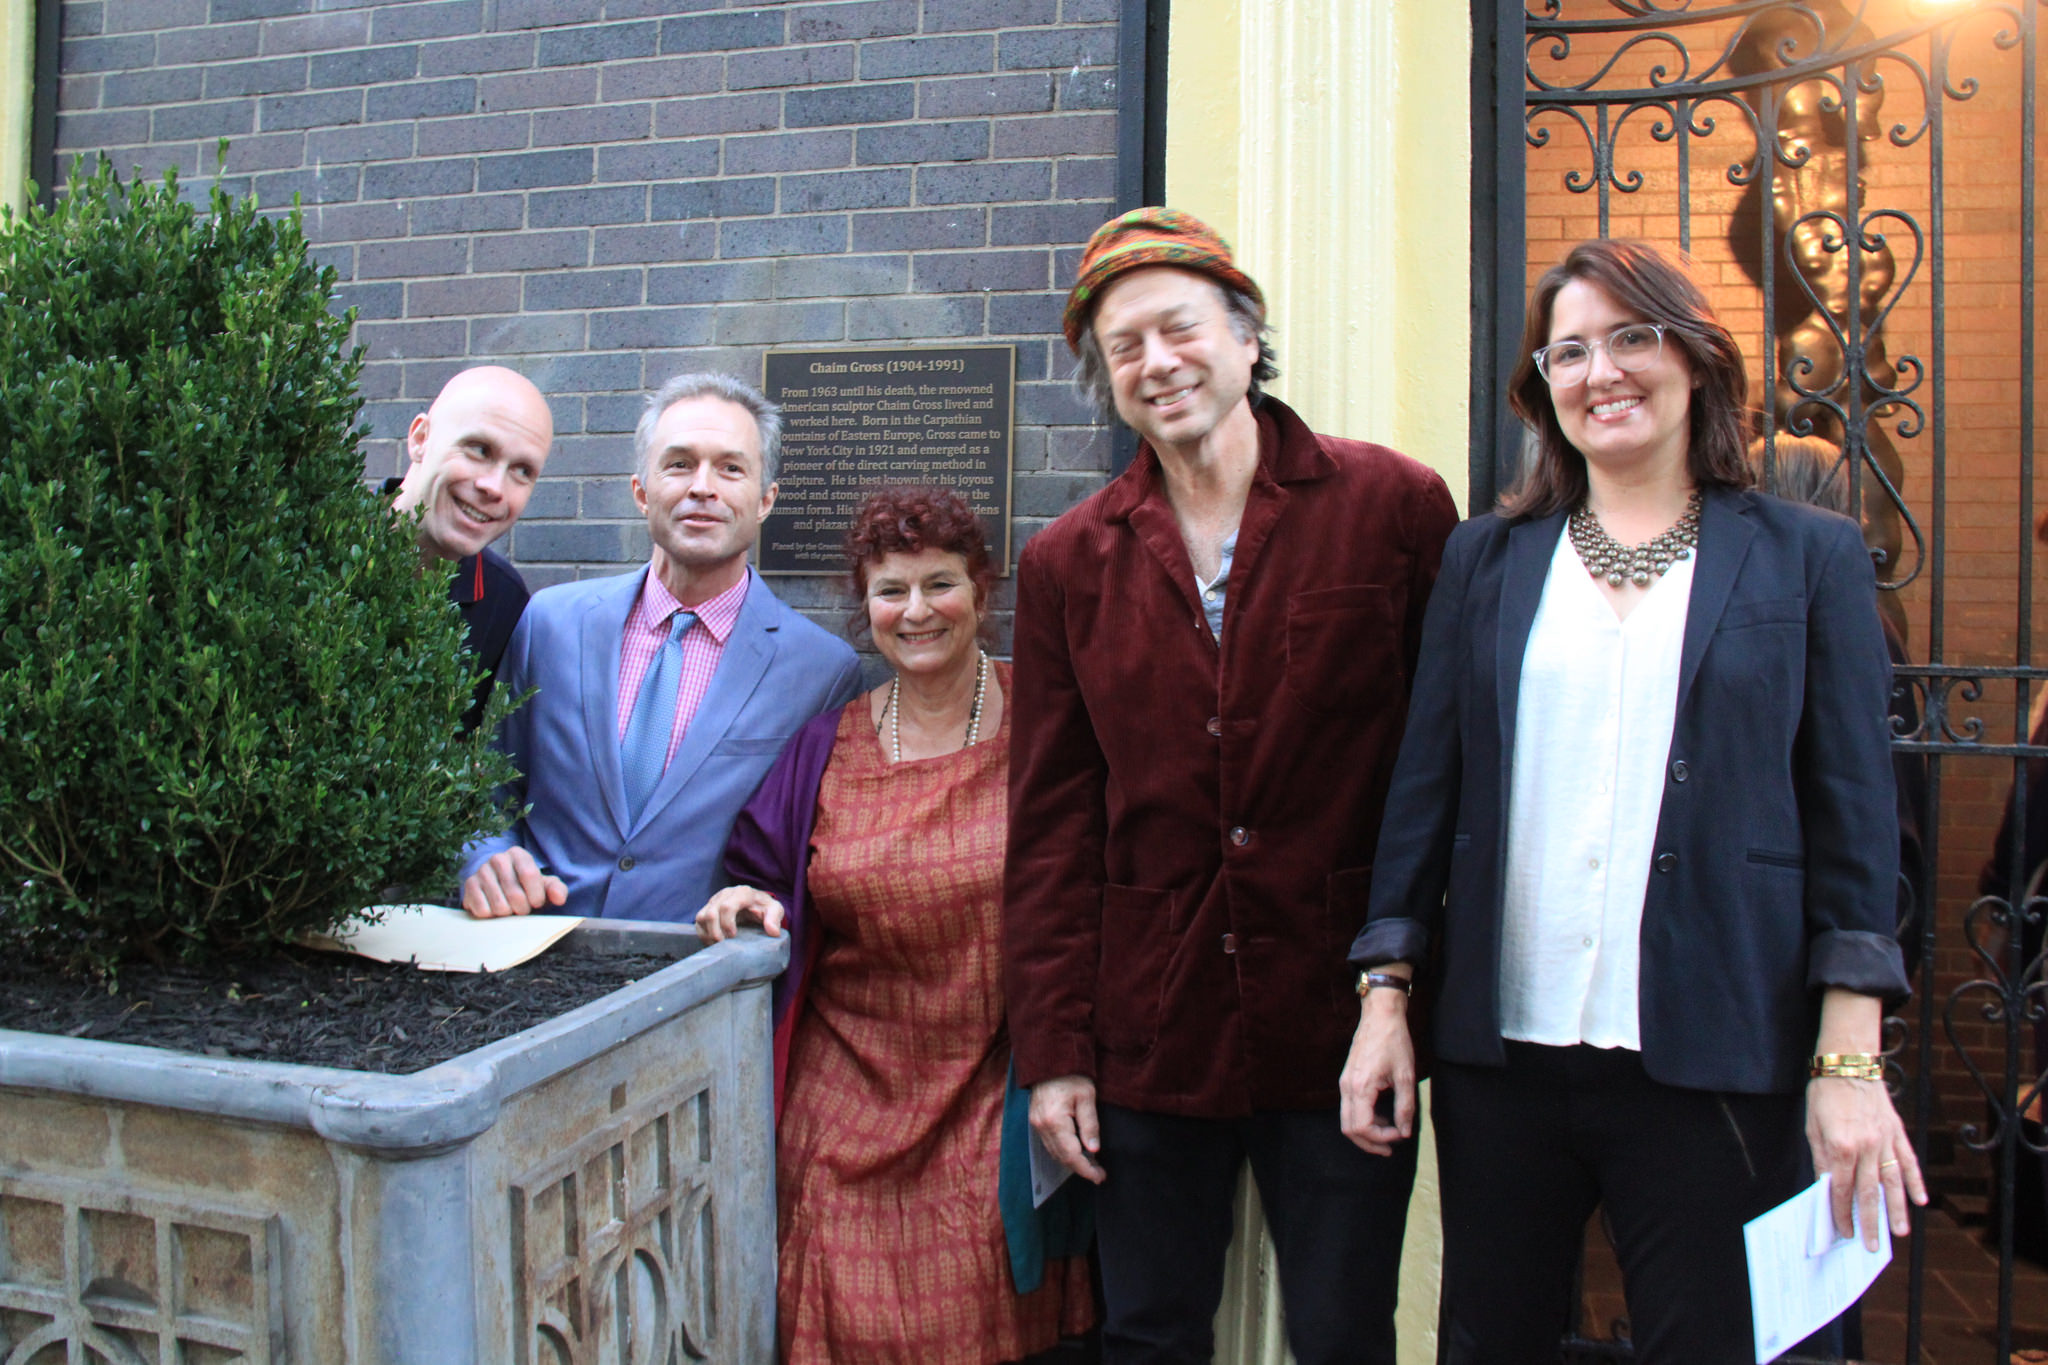 Andrew Berman Executive Director of GVSHP, Harry Bubbbins, Mimi Gross,, Phil Hartman of Two Boots and Dr. Susan Fisher.